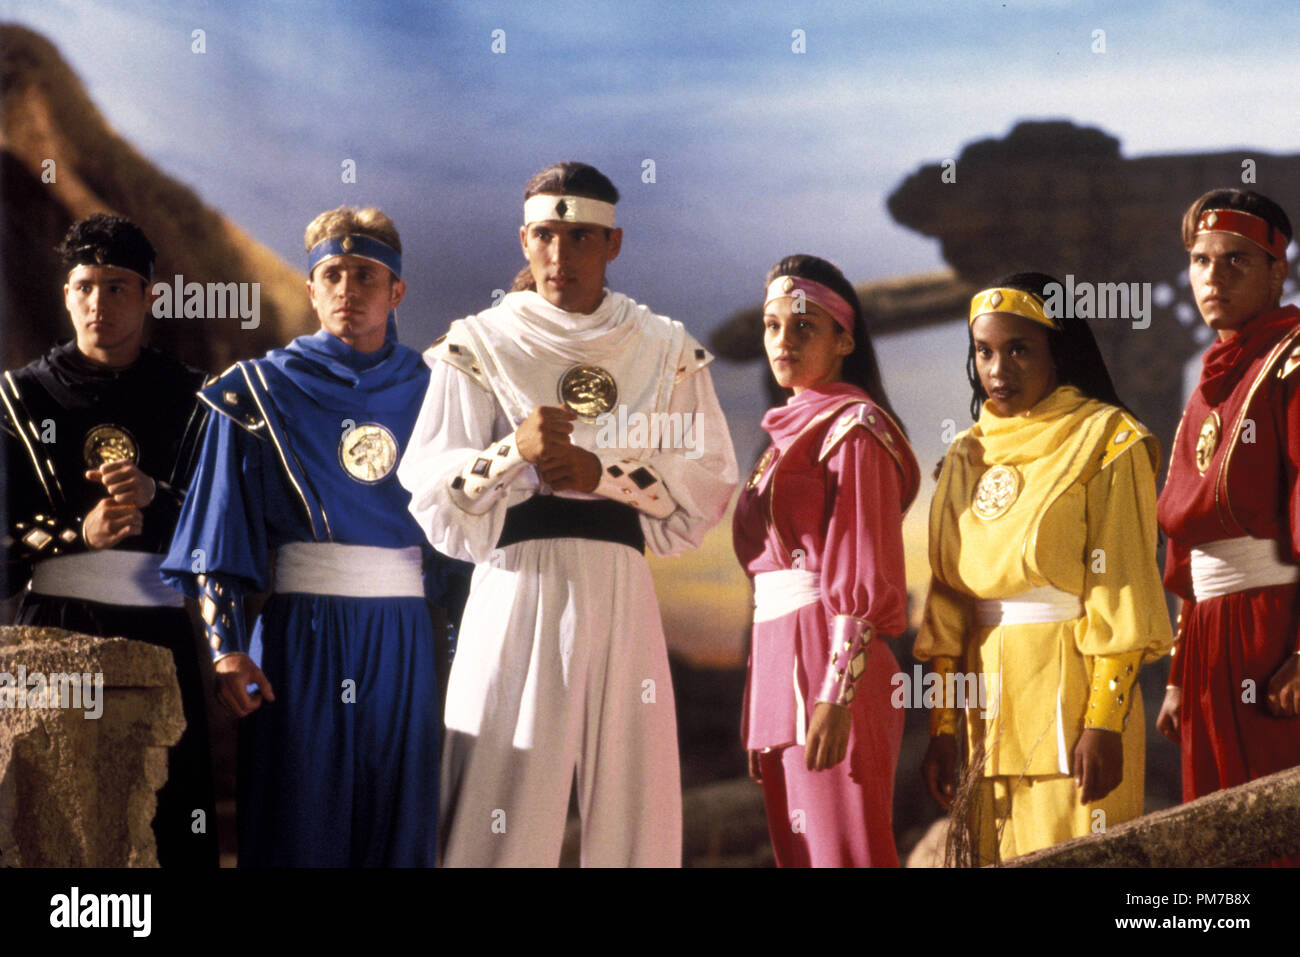 Film Still from 'Mighty Morphin Power Rangers: The Movie' Johnny Yong Bosch, David Yost, Jason David Frank, Amy Jo Johnson, Karan Ashley, Steve Cardenas © 1995 20th Century Fox Photo Credit: Jim Townley  File Reference # 31043215THA  For Editorial Use Only - All Rights Reserved - Stock Image